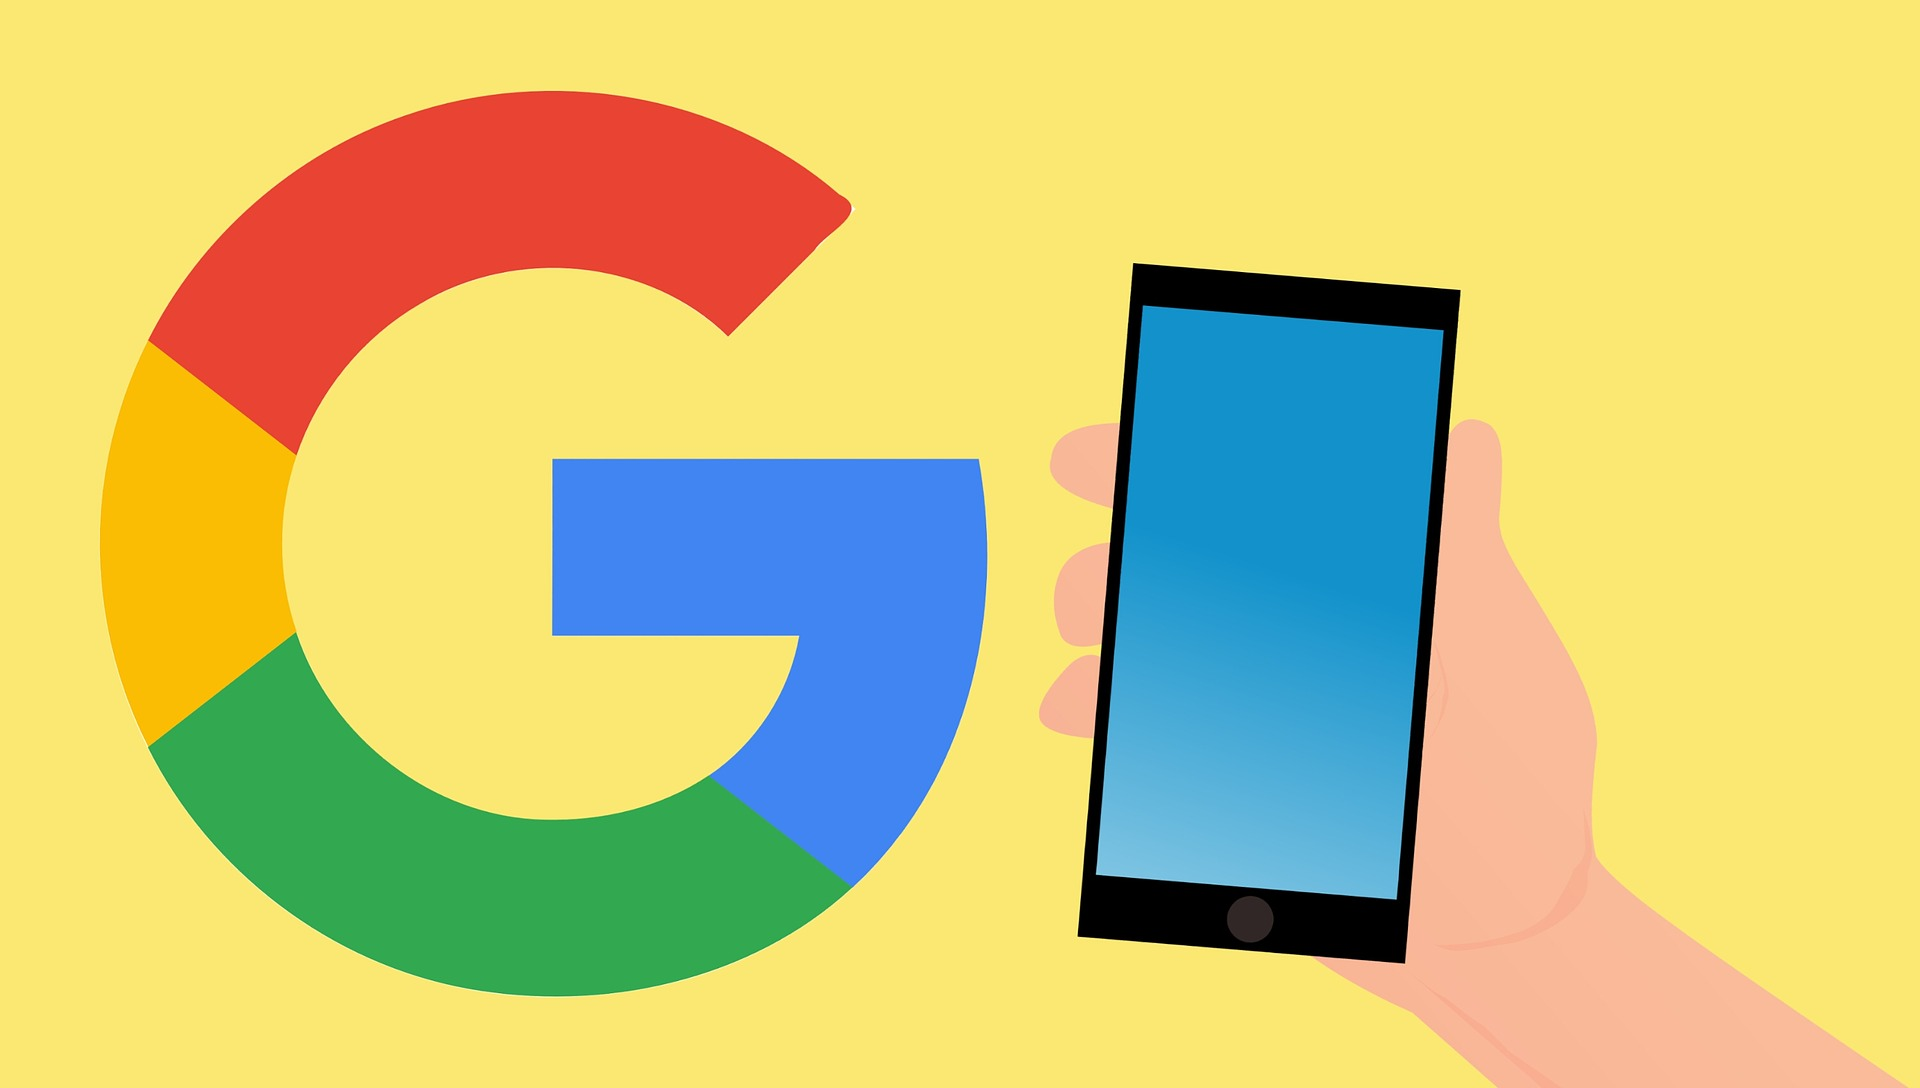 Google's In-Depth Articles: Why You Should Not Worry About It